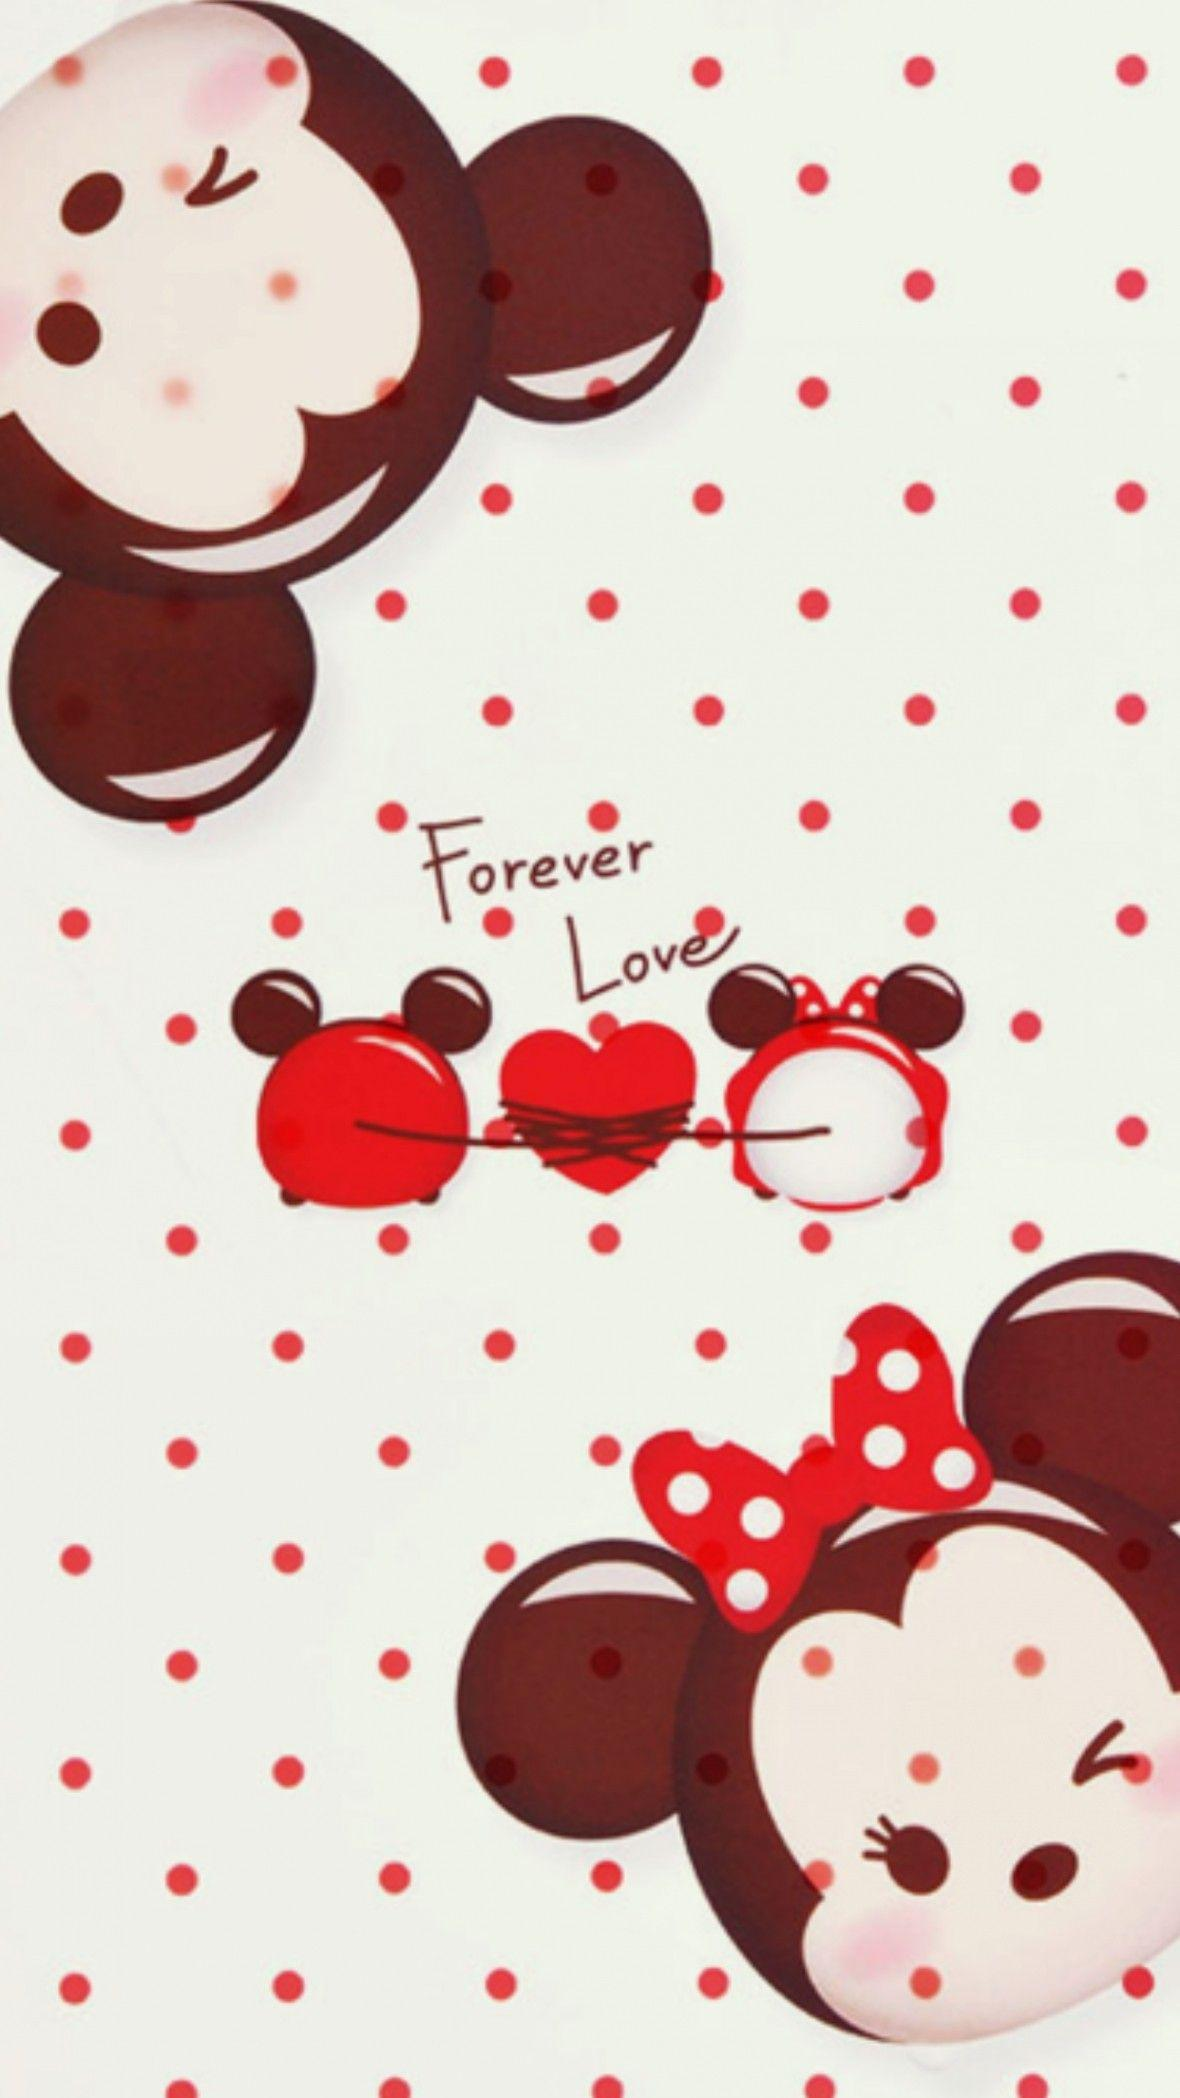 Mickey and Minnie Mouse Wallpapers ·①